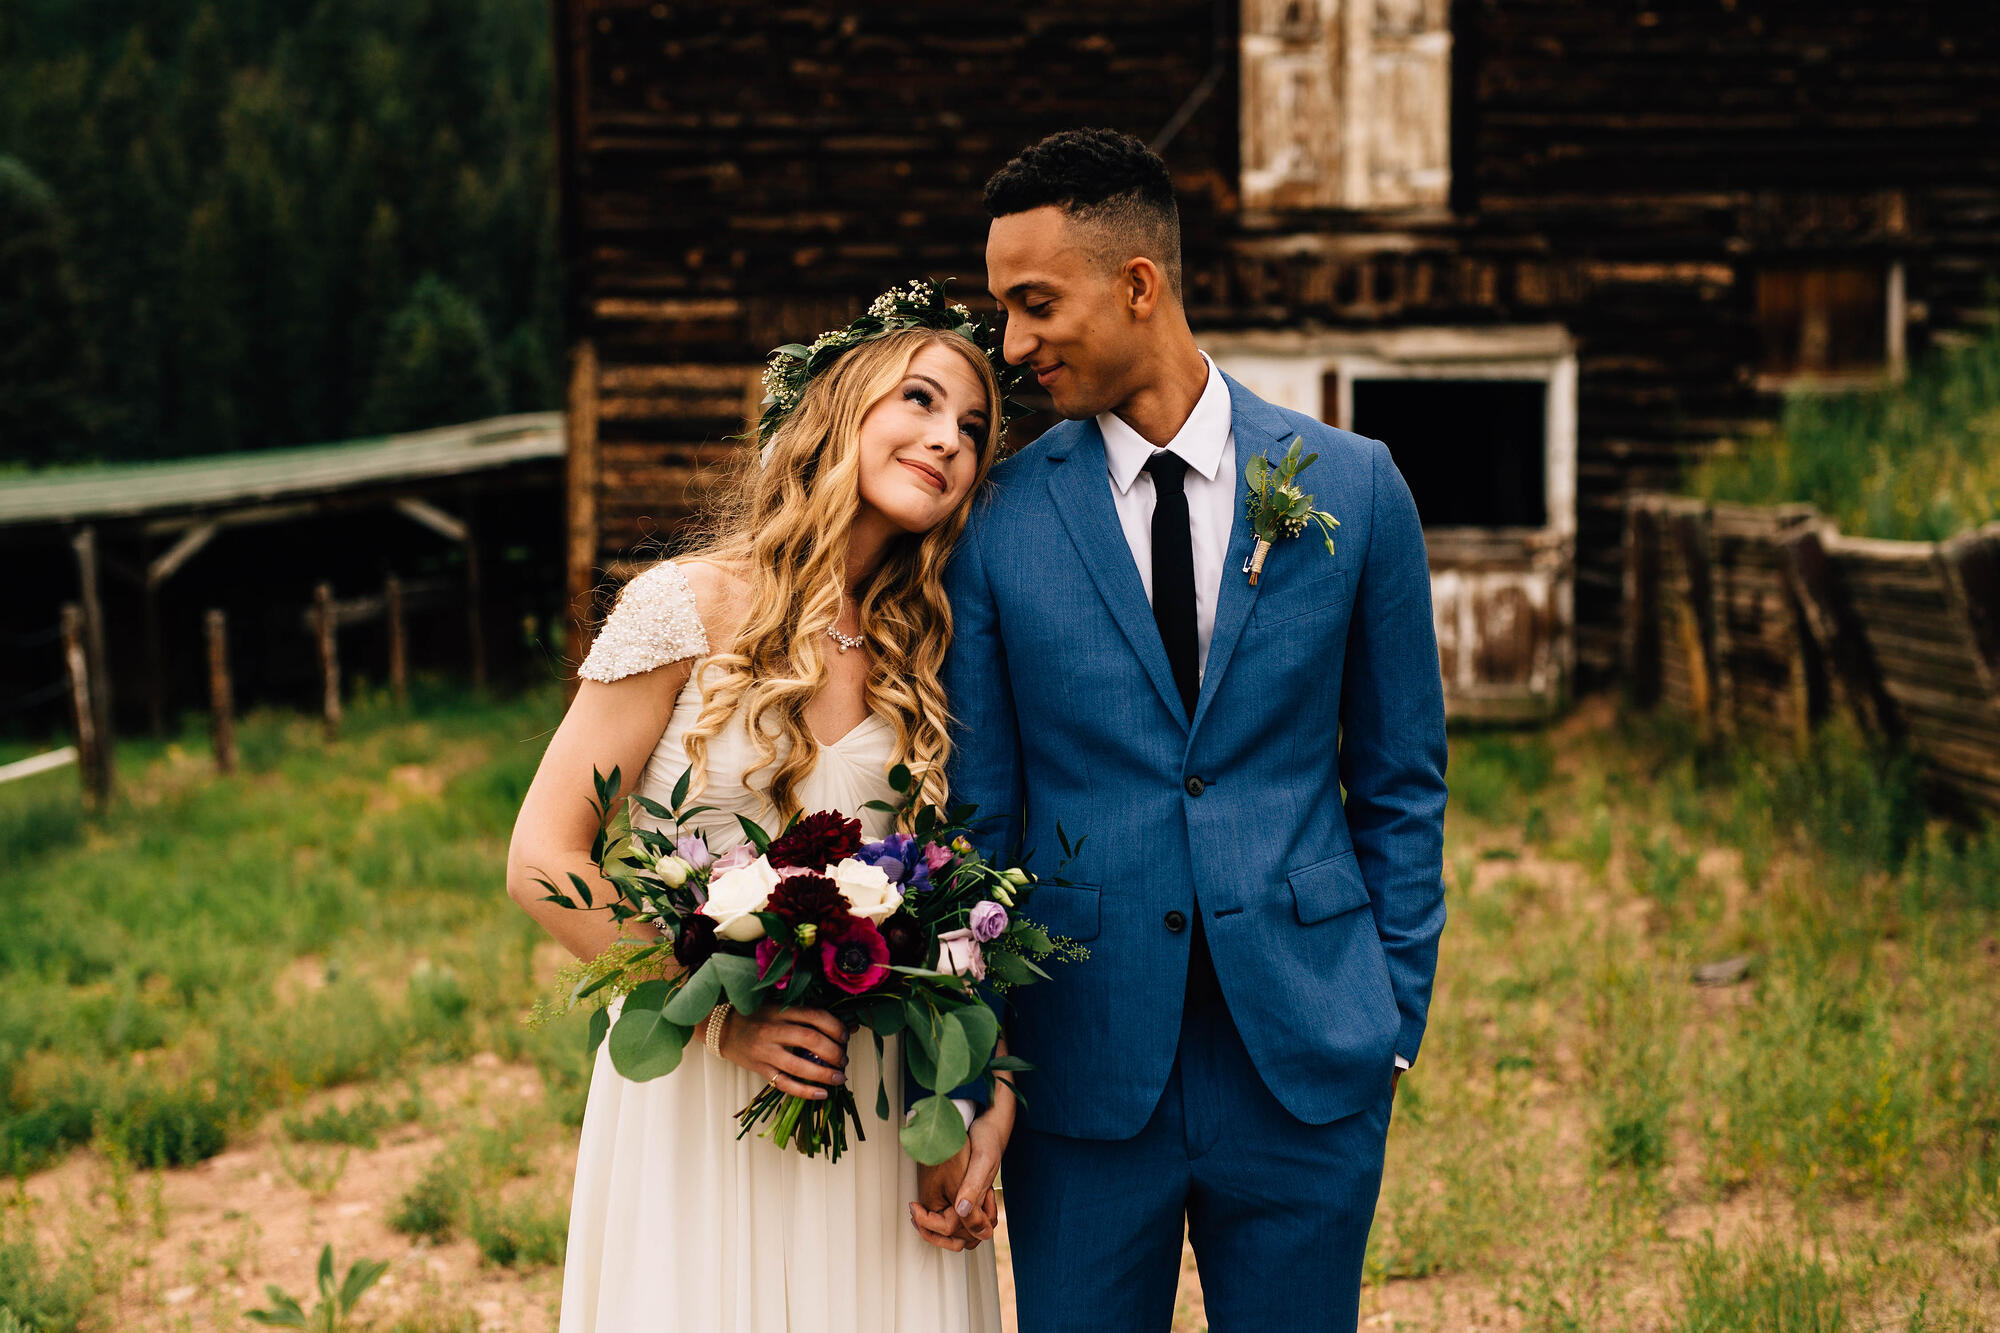 dreamy autumn wedding at Mountain View Ranch by Wedgewood Weddings